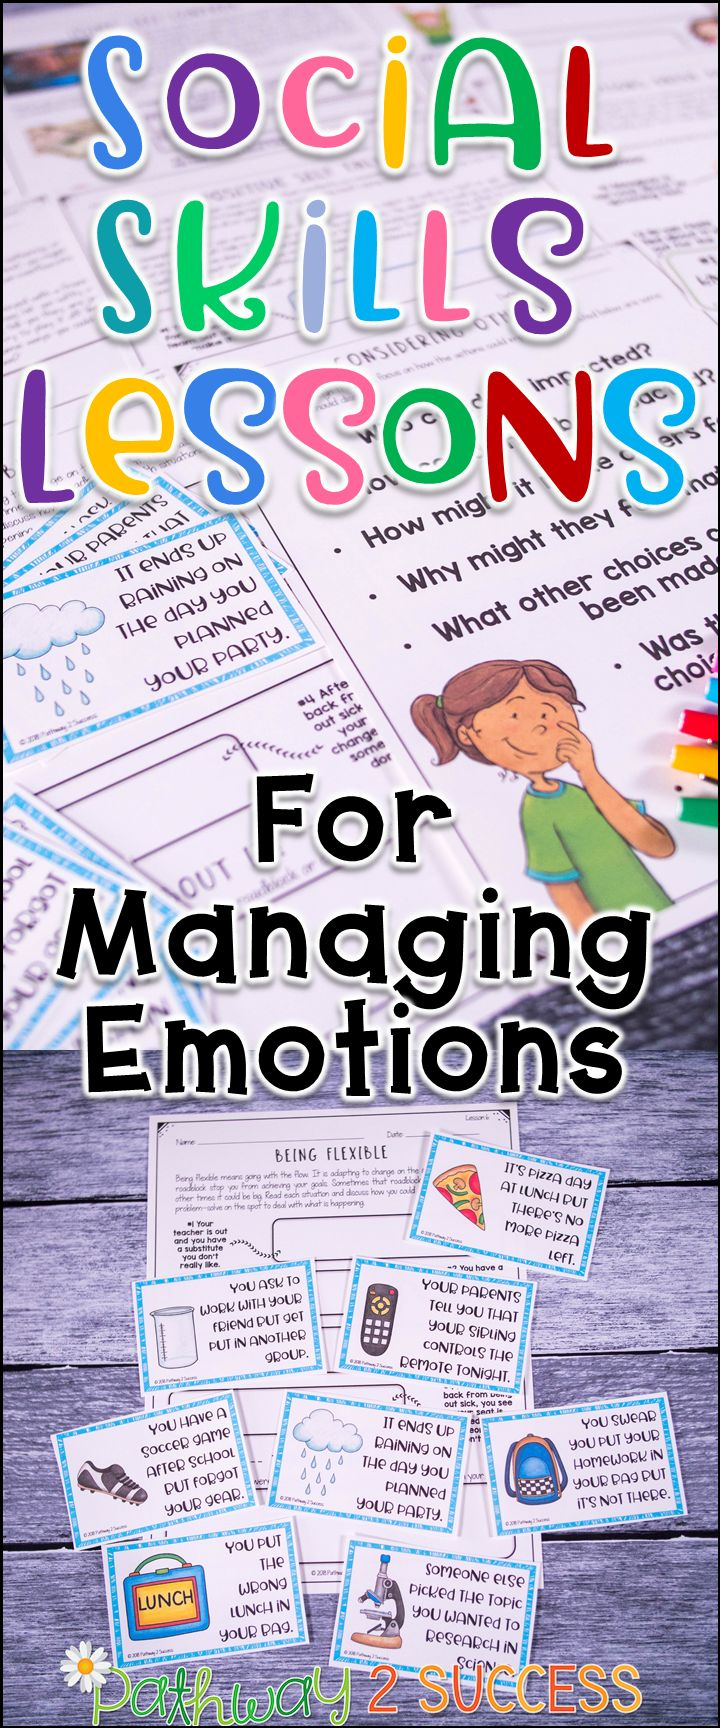 Teach social skills lessons focus on how to manage emotions to kids and young adults. Resources include detailed educator lessons and 50 activities! Lessons focus on emotional awareness, making positive choices, understanding consequences, expressing yourself, dealing with disappointments, adapting to change, dealing with anger, and much more.